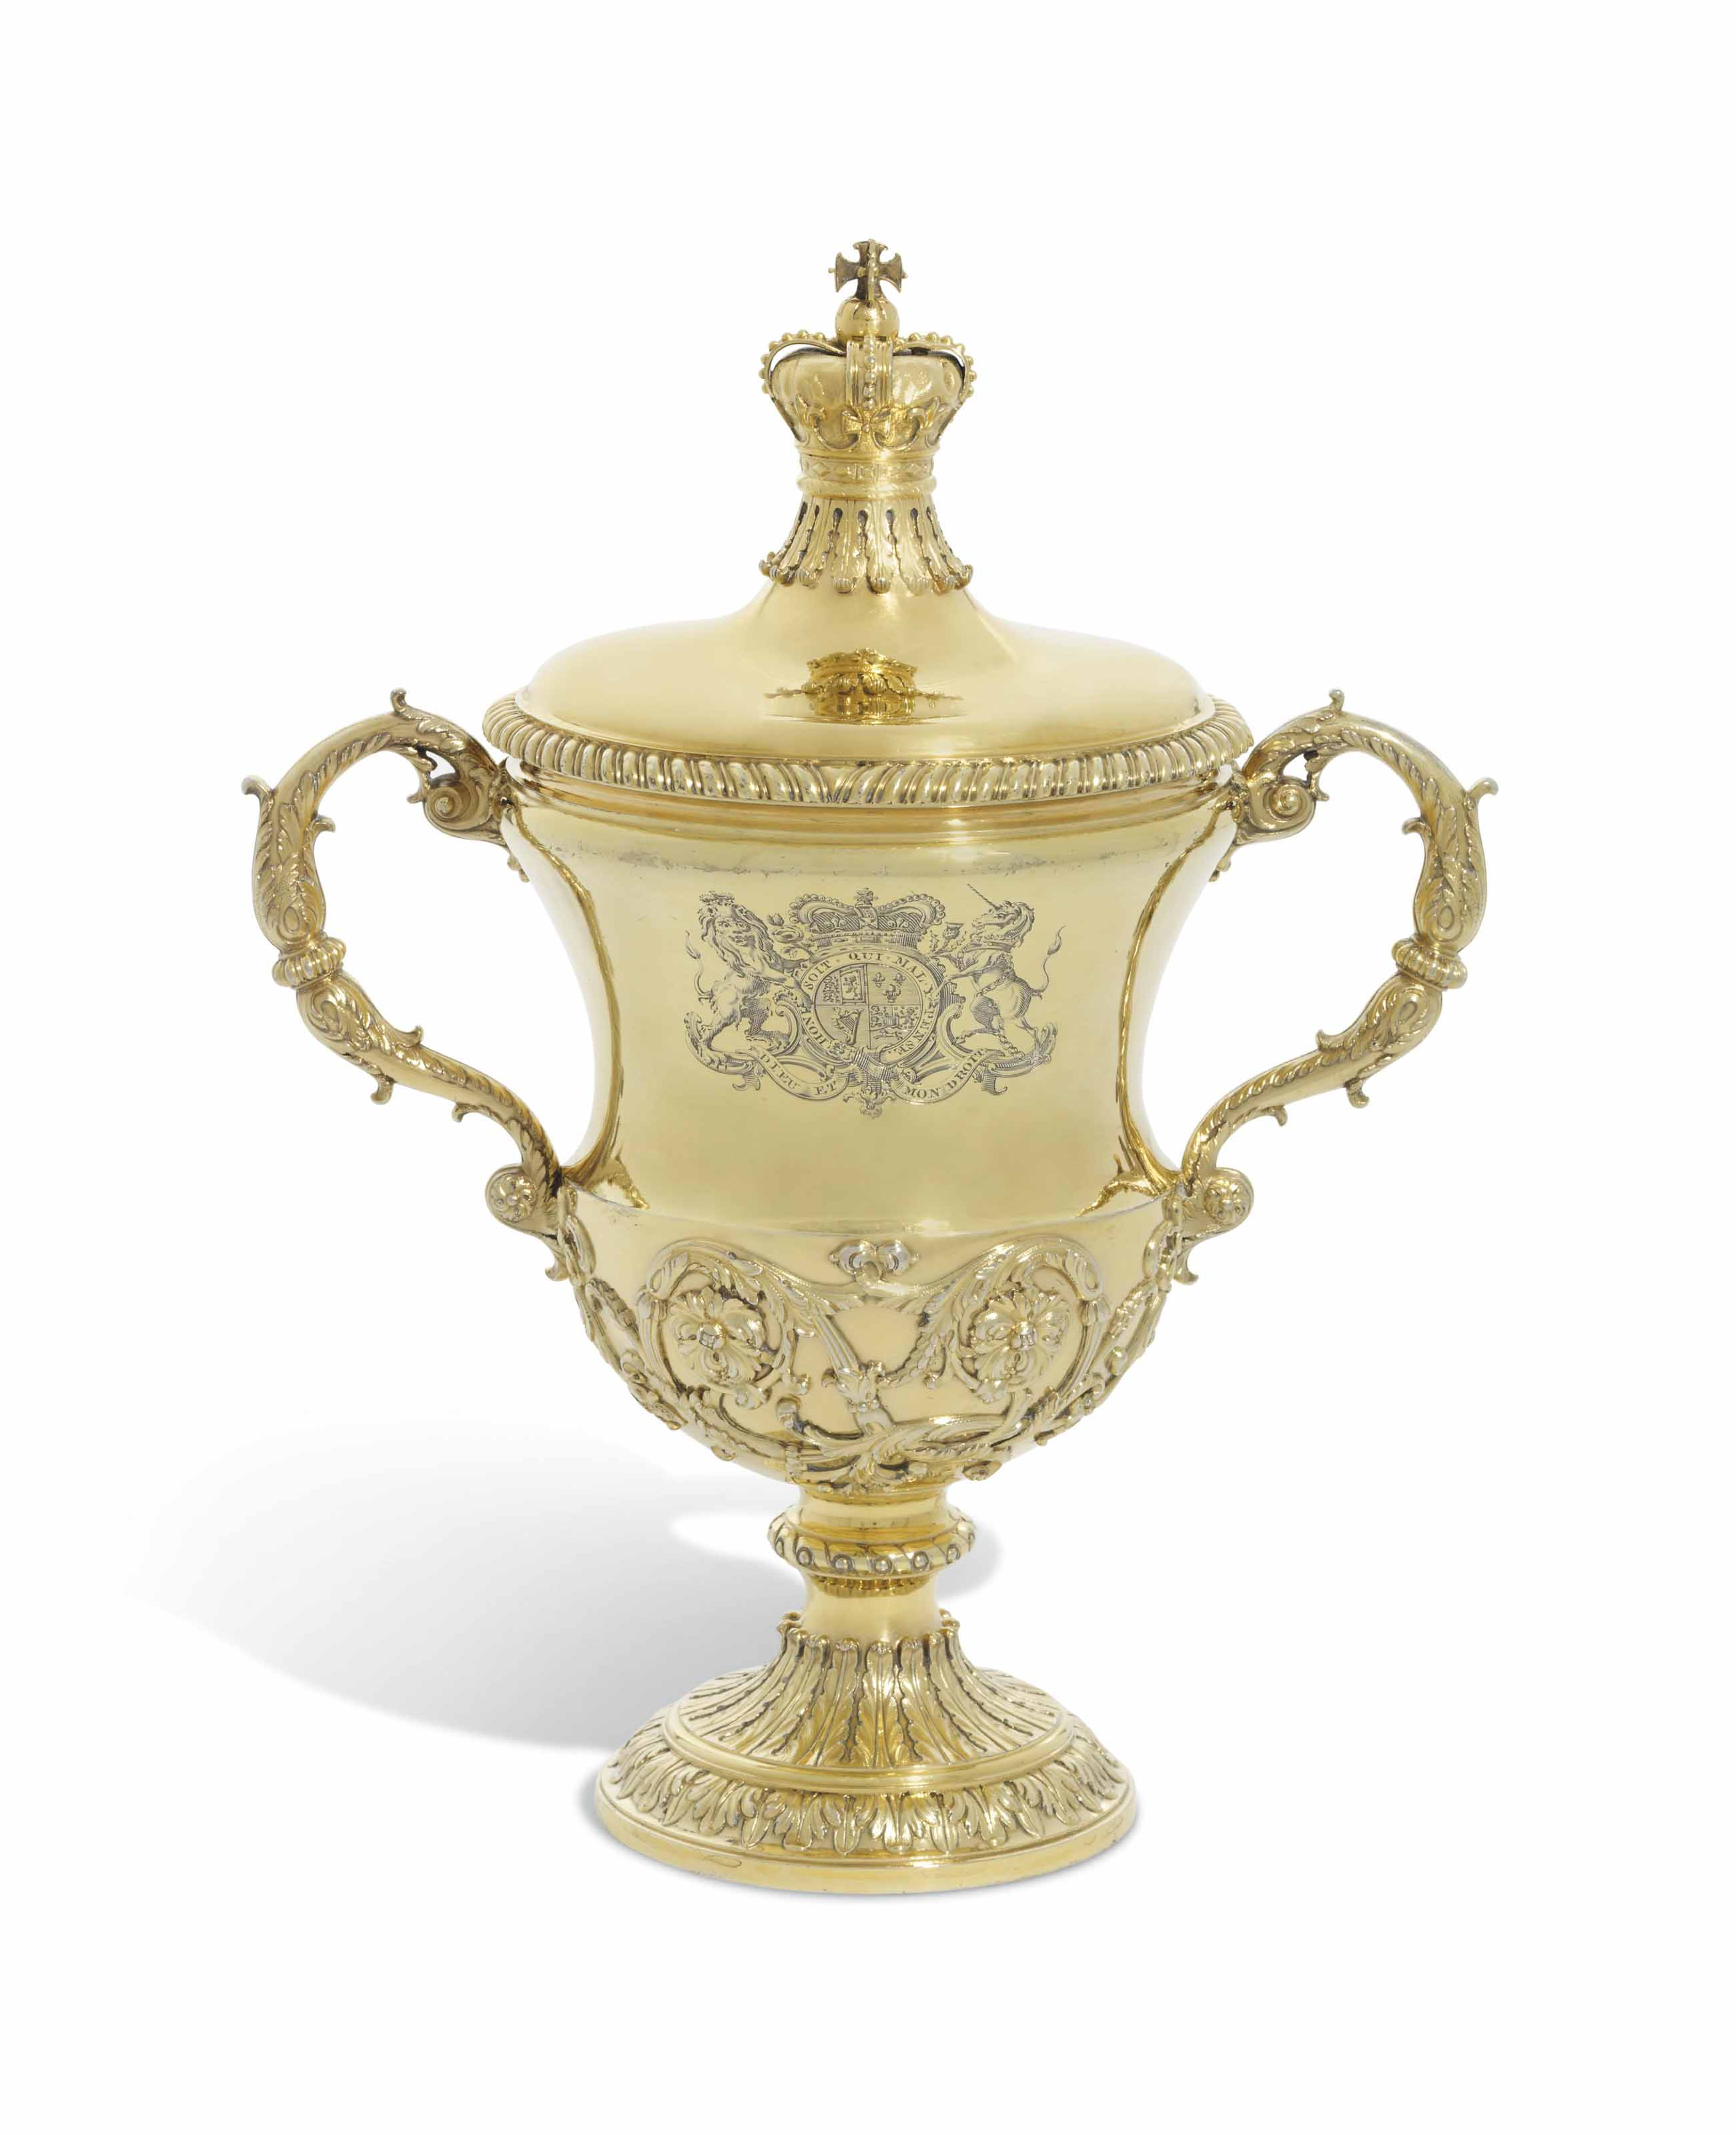 A GEORGE II SILVER-GILT CUP AND COVER